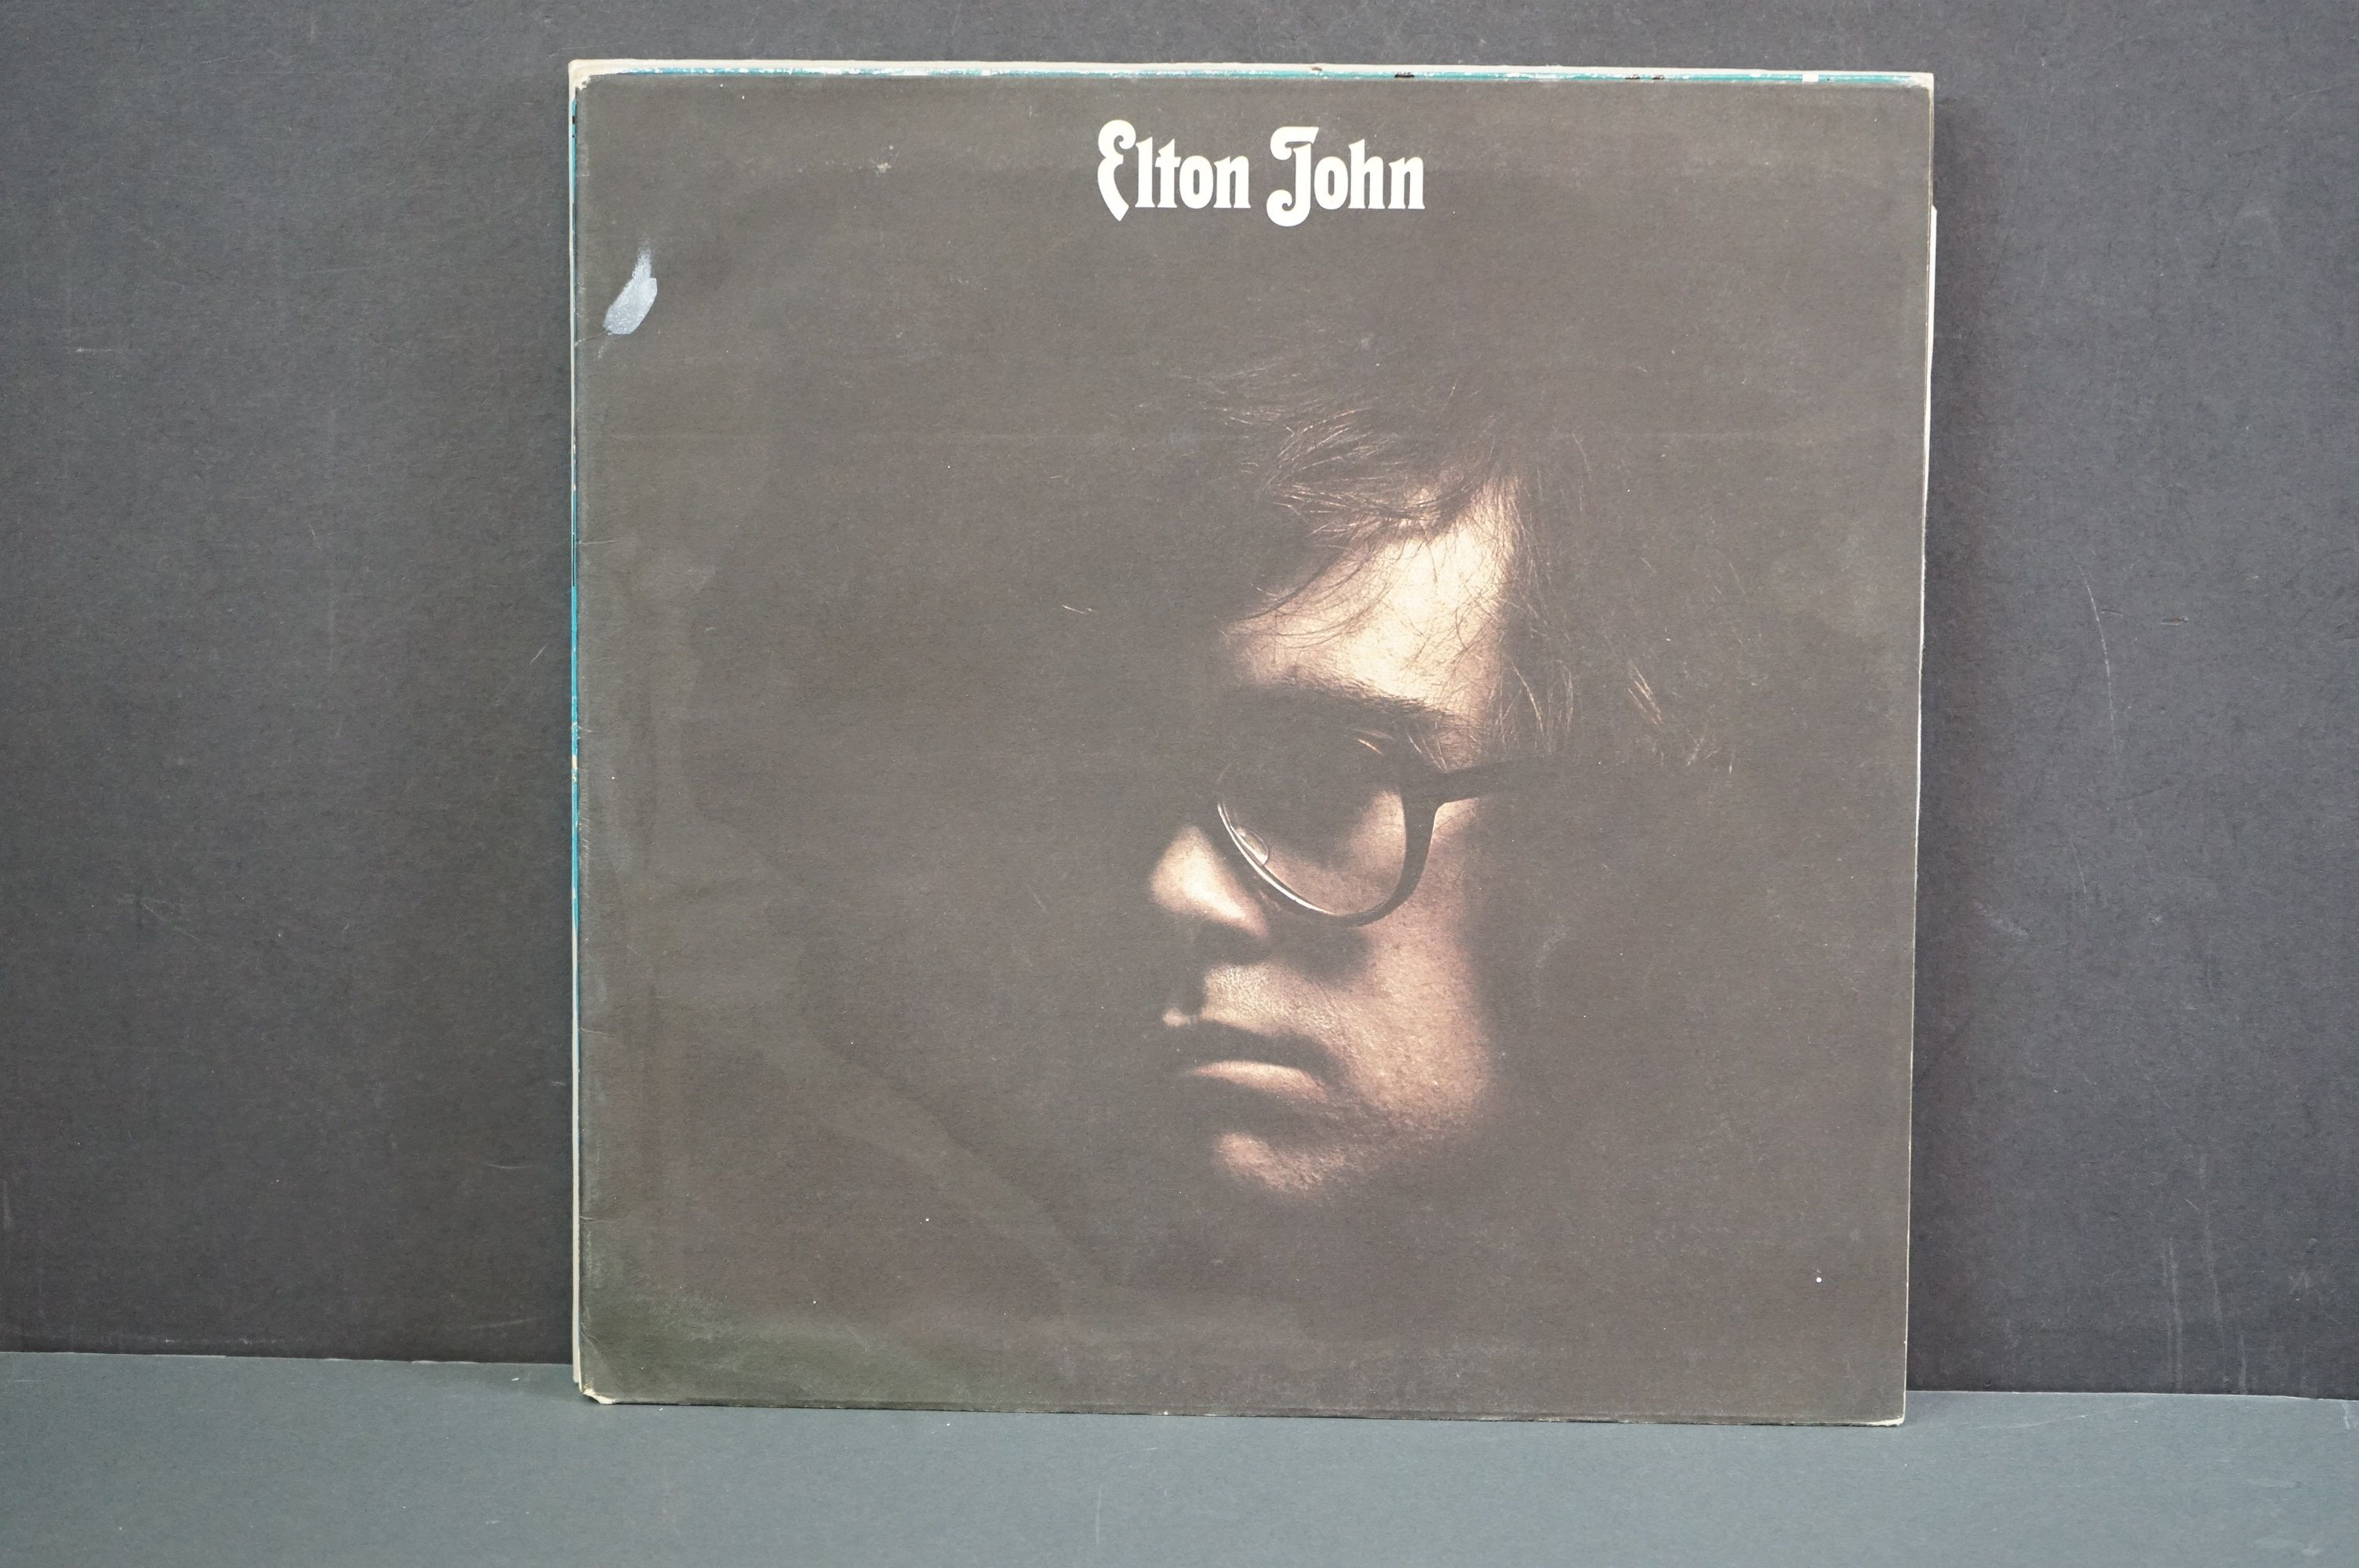 Vinyl - 16 Elton John LPs to include A Single Man, Blue Moves, Greatest Hits, Goodbye Yellow Brick - Image 13 of 16